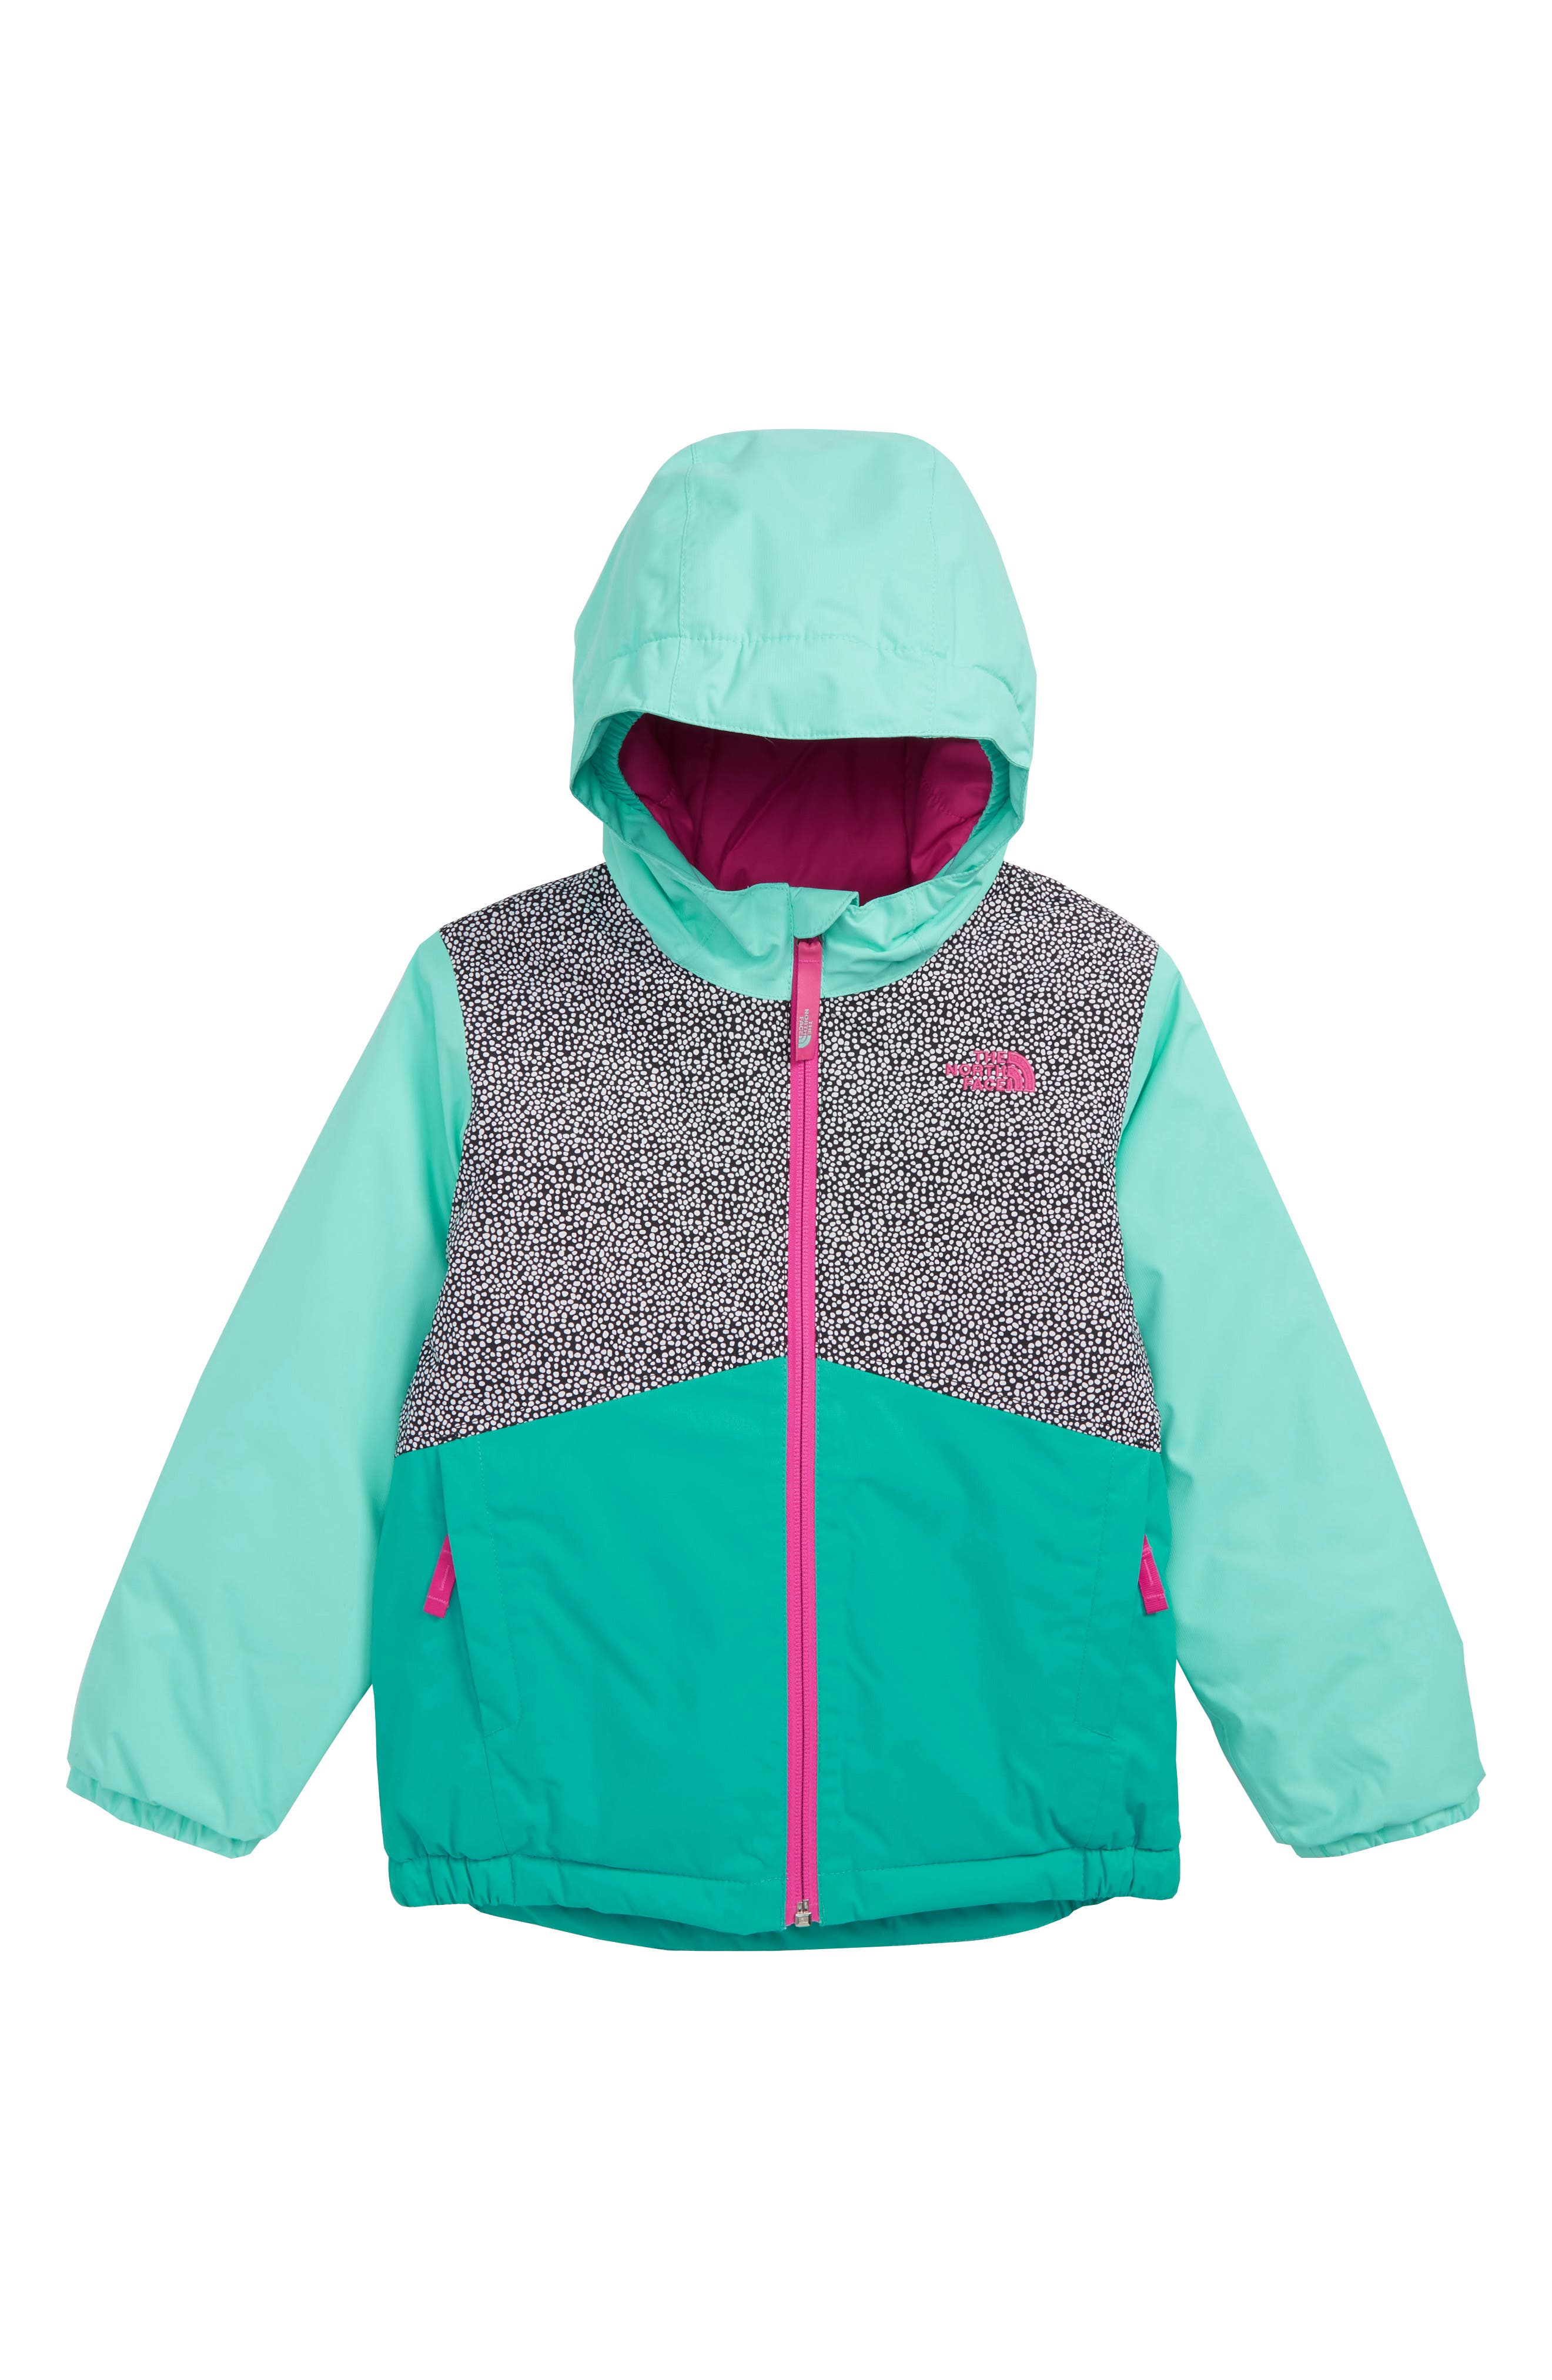 Snowquest Waterproof Insulated Winter Jacket,                             Main thumbnail 1, color,                             TNF WHITE MINI DOT PRINT